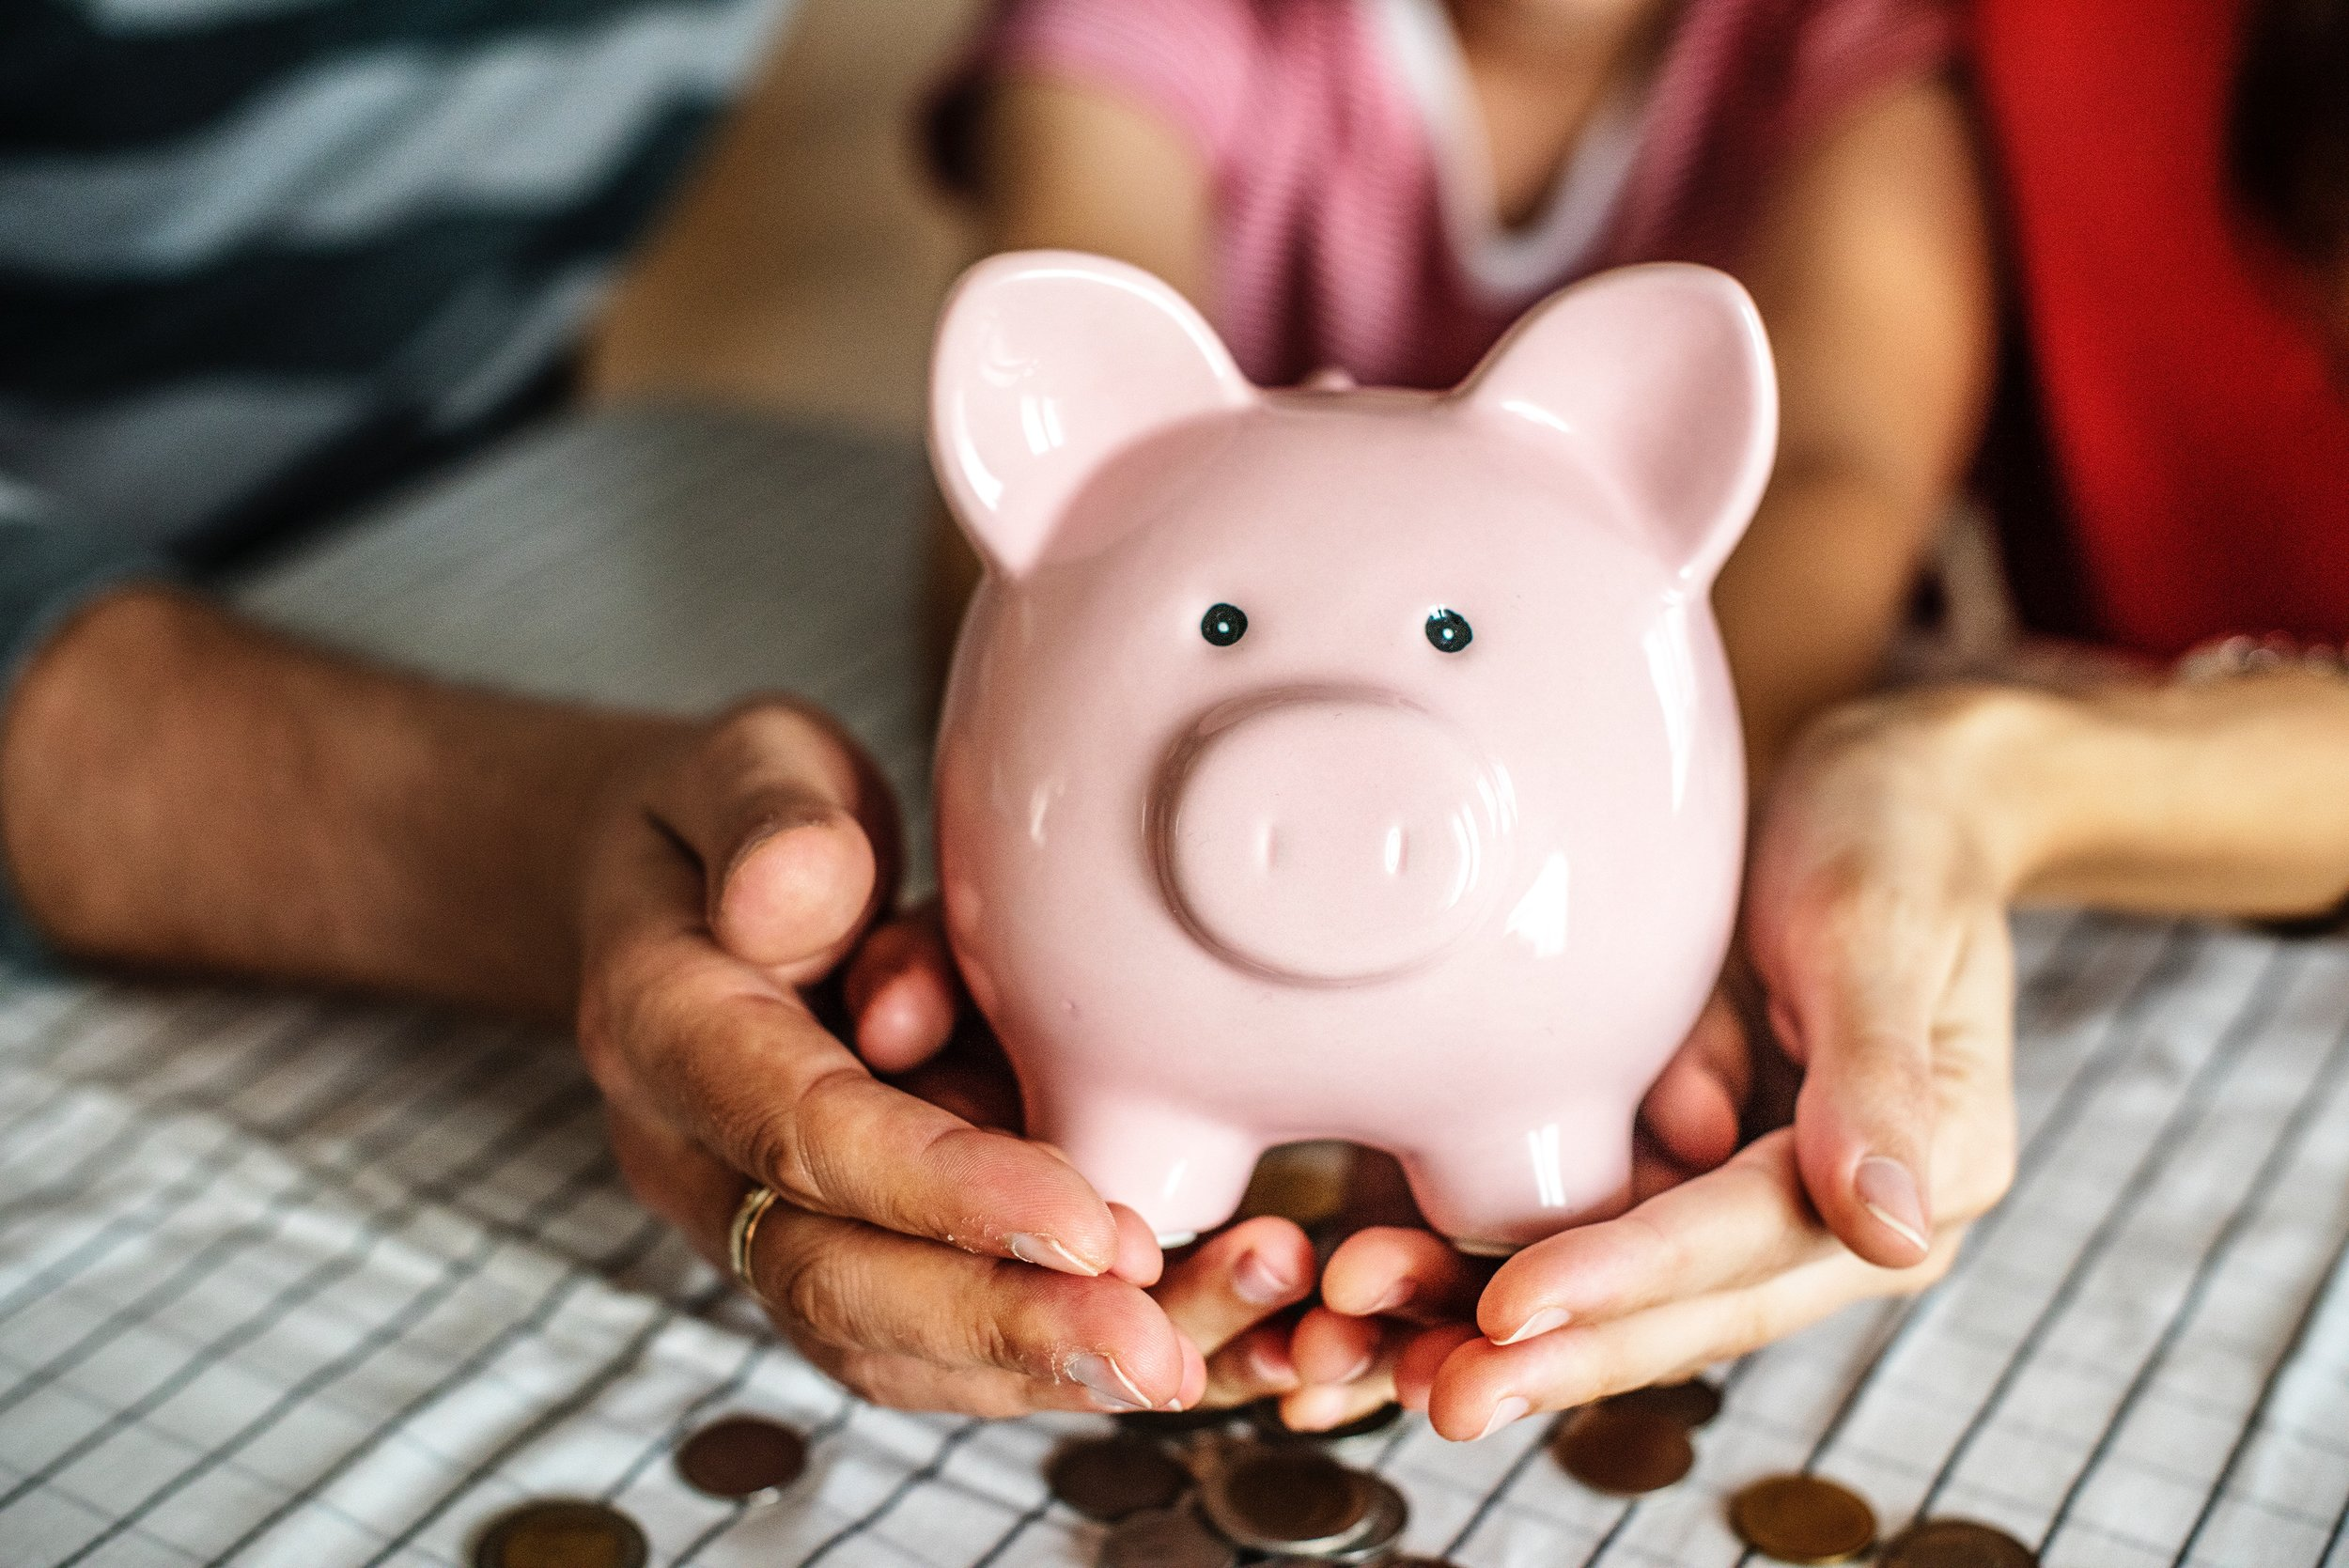 Managing Your Money - Tips on budgeting and saving, preparing for a financial emergency and more